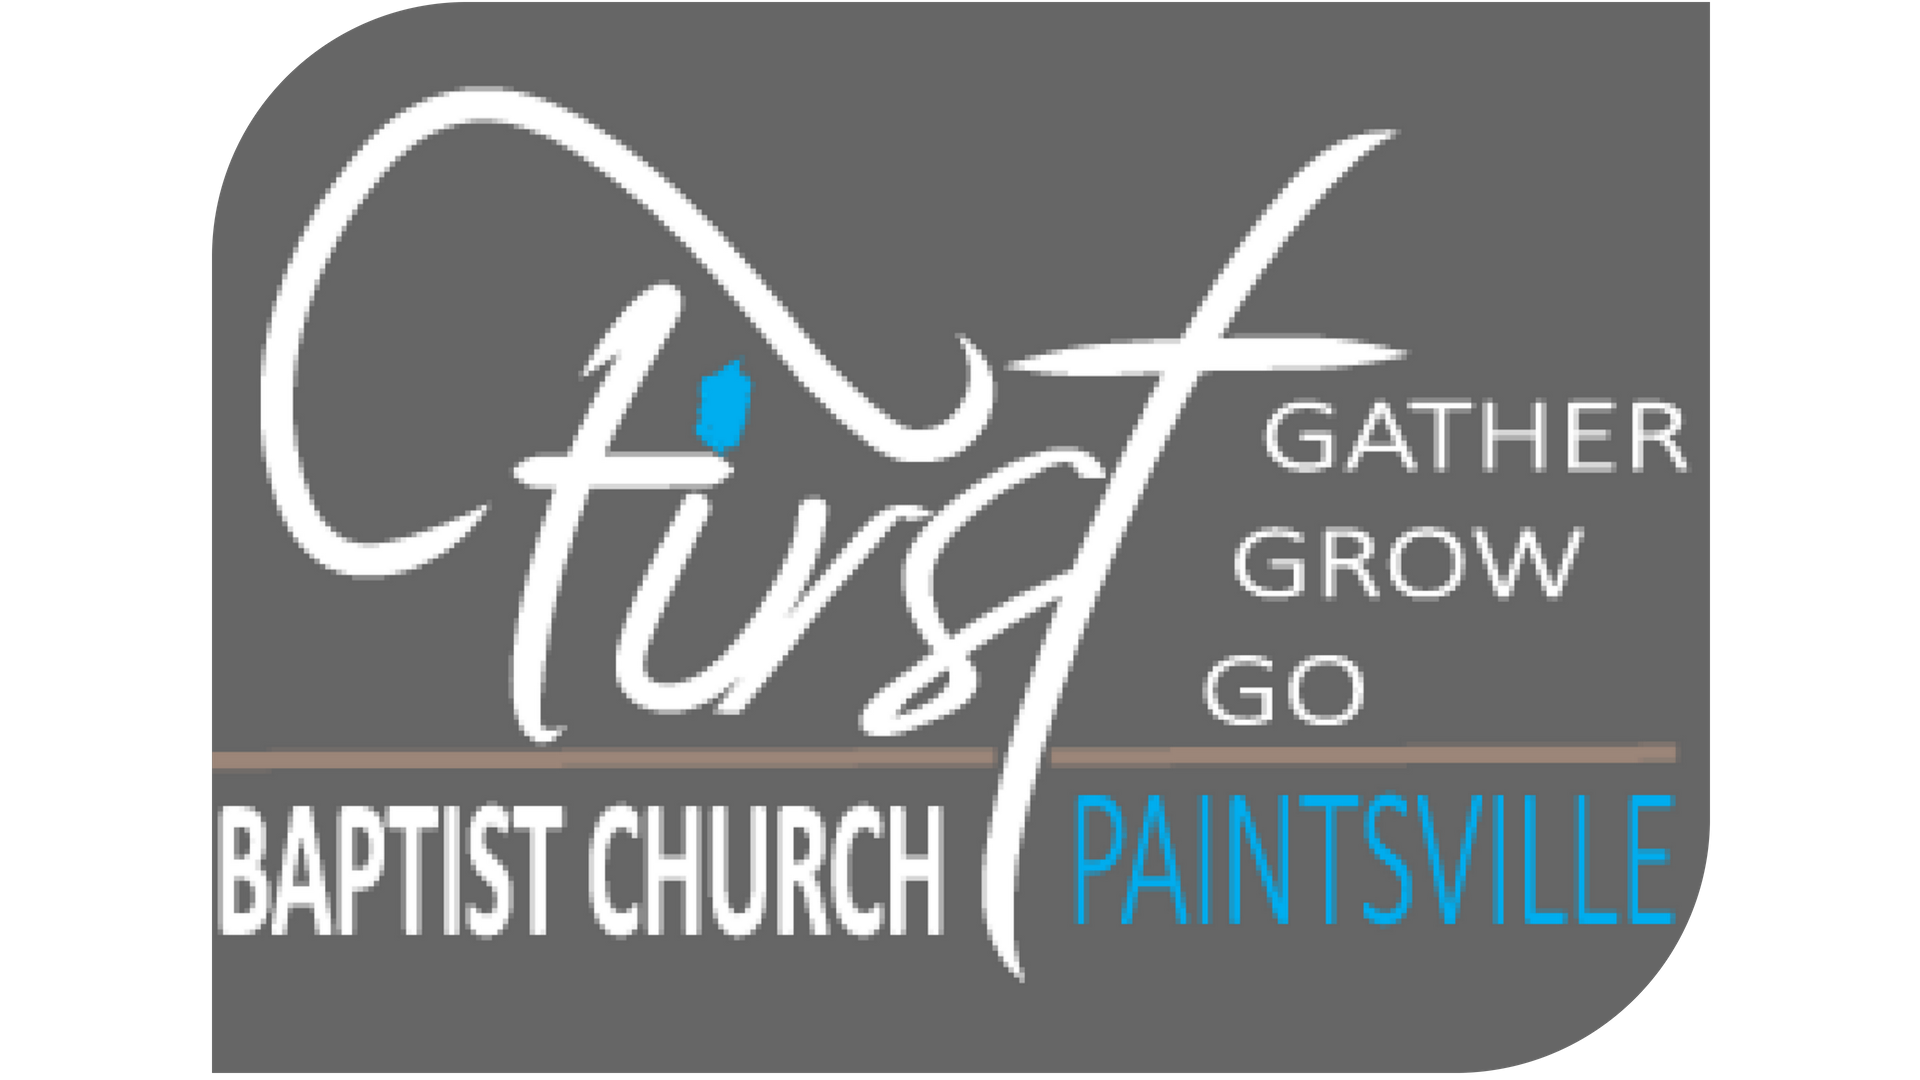 First Baptist Church Paintsville